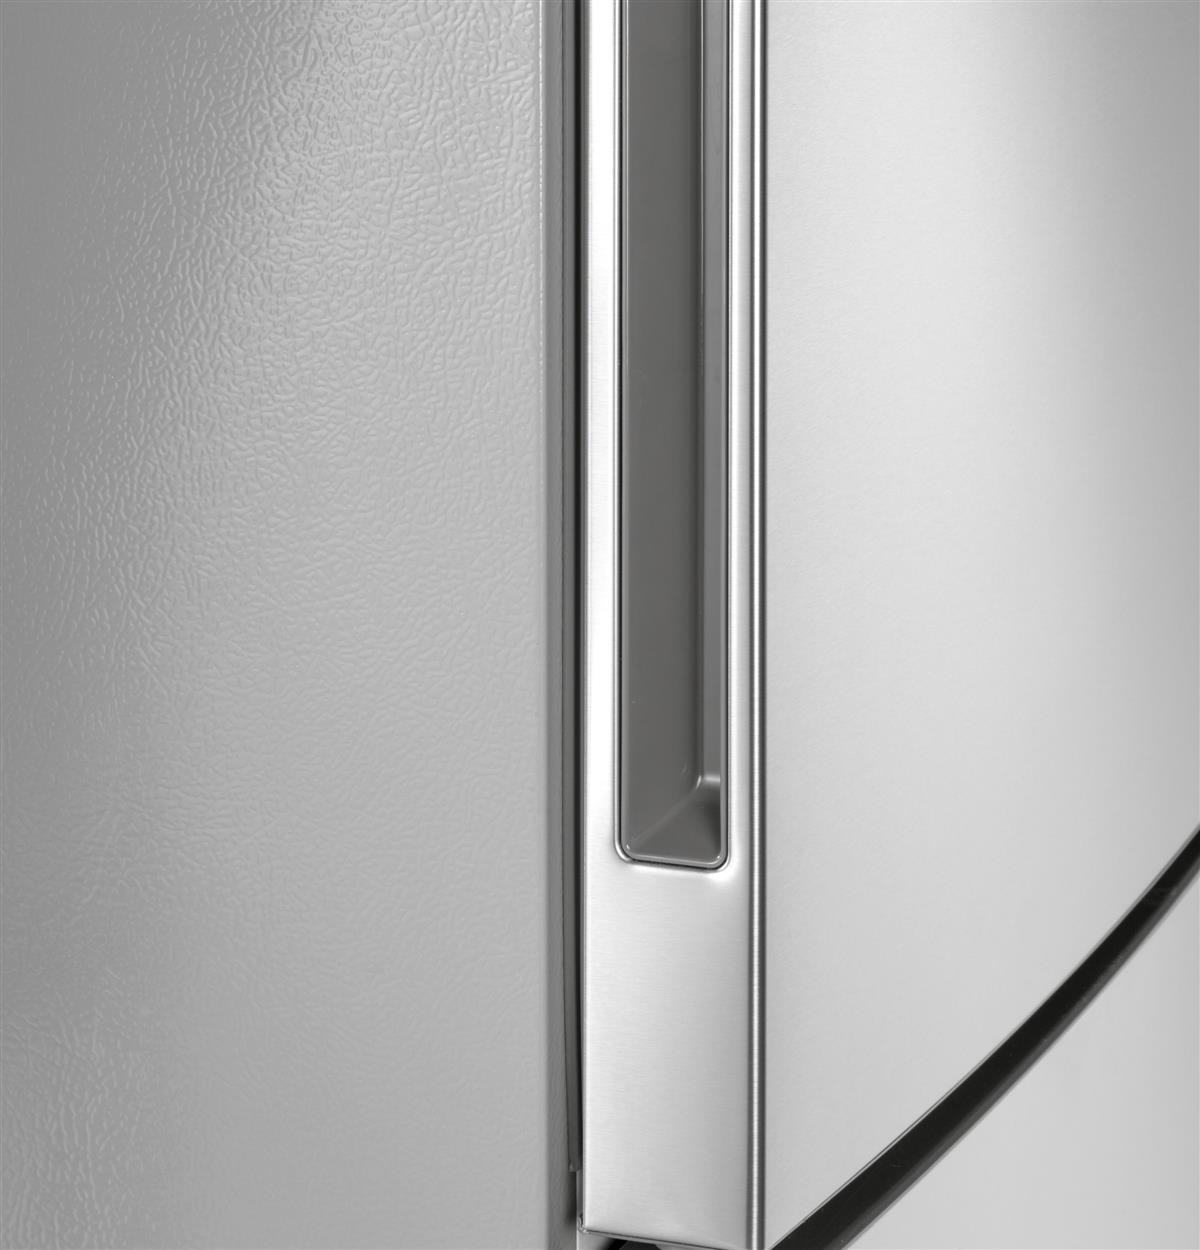 Stainless Bottom-Freezer HRB15N3BGS Feature Photos